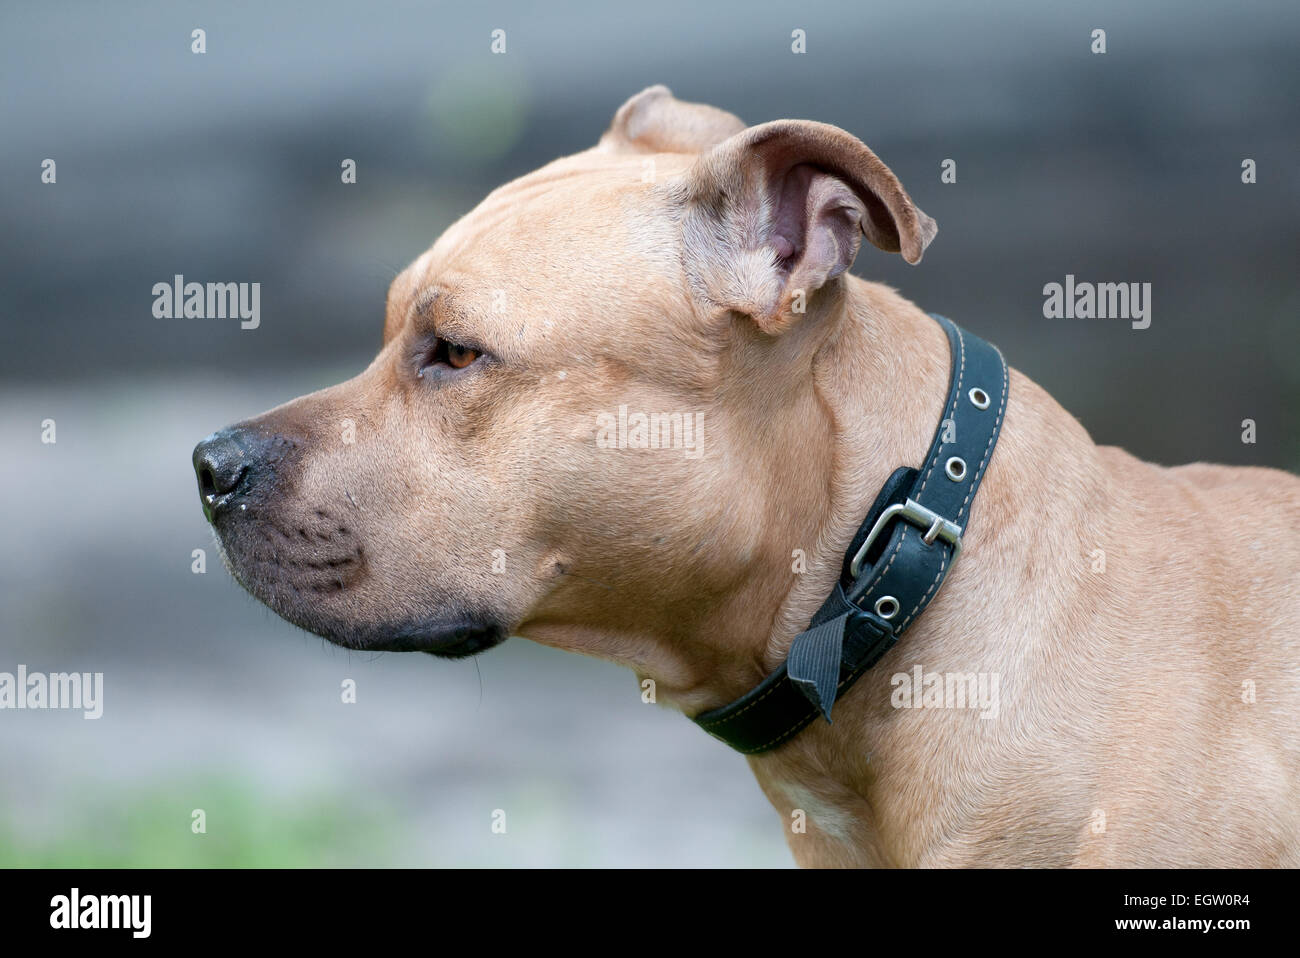 Dog breed Staffordshire Bull Terrier - Stock Image